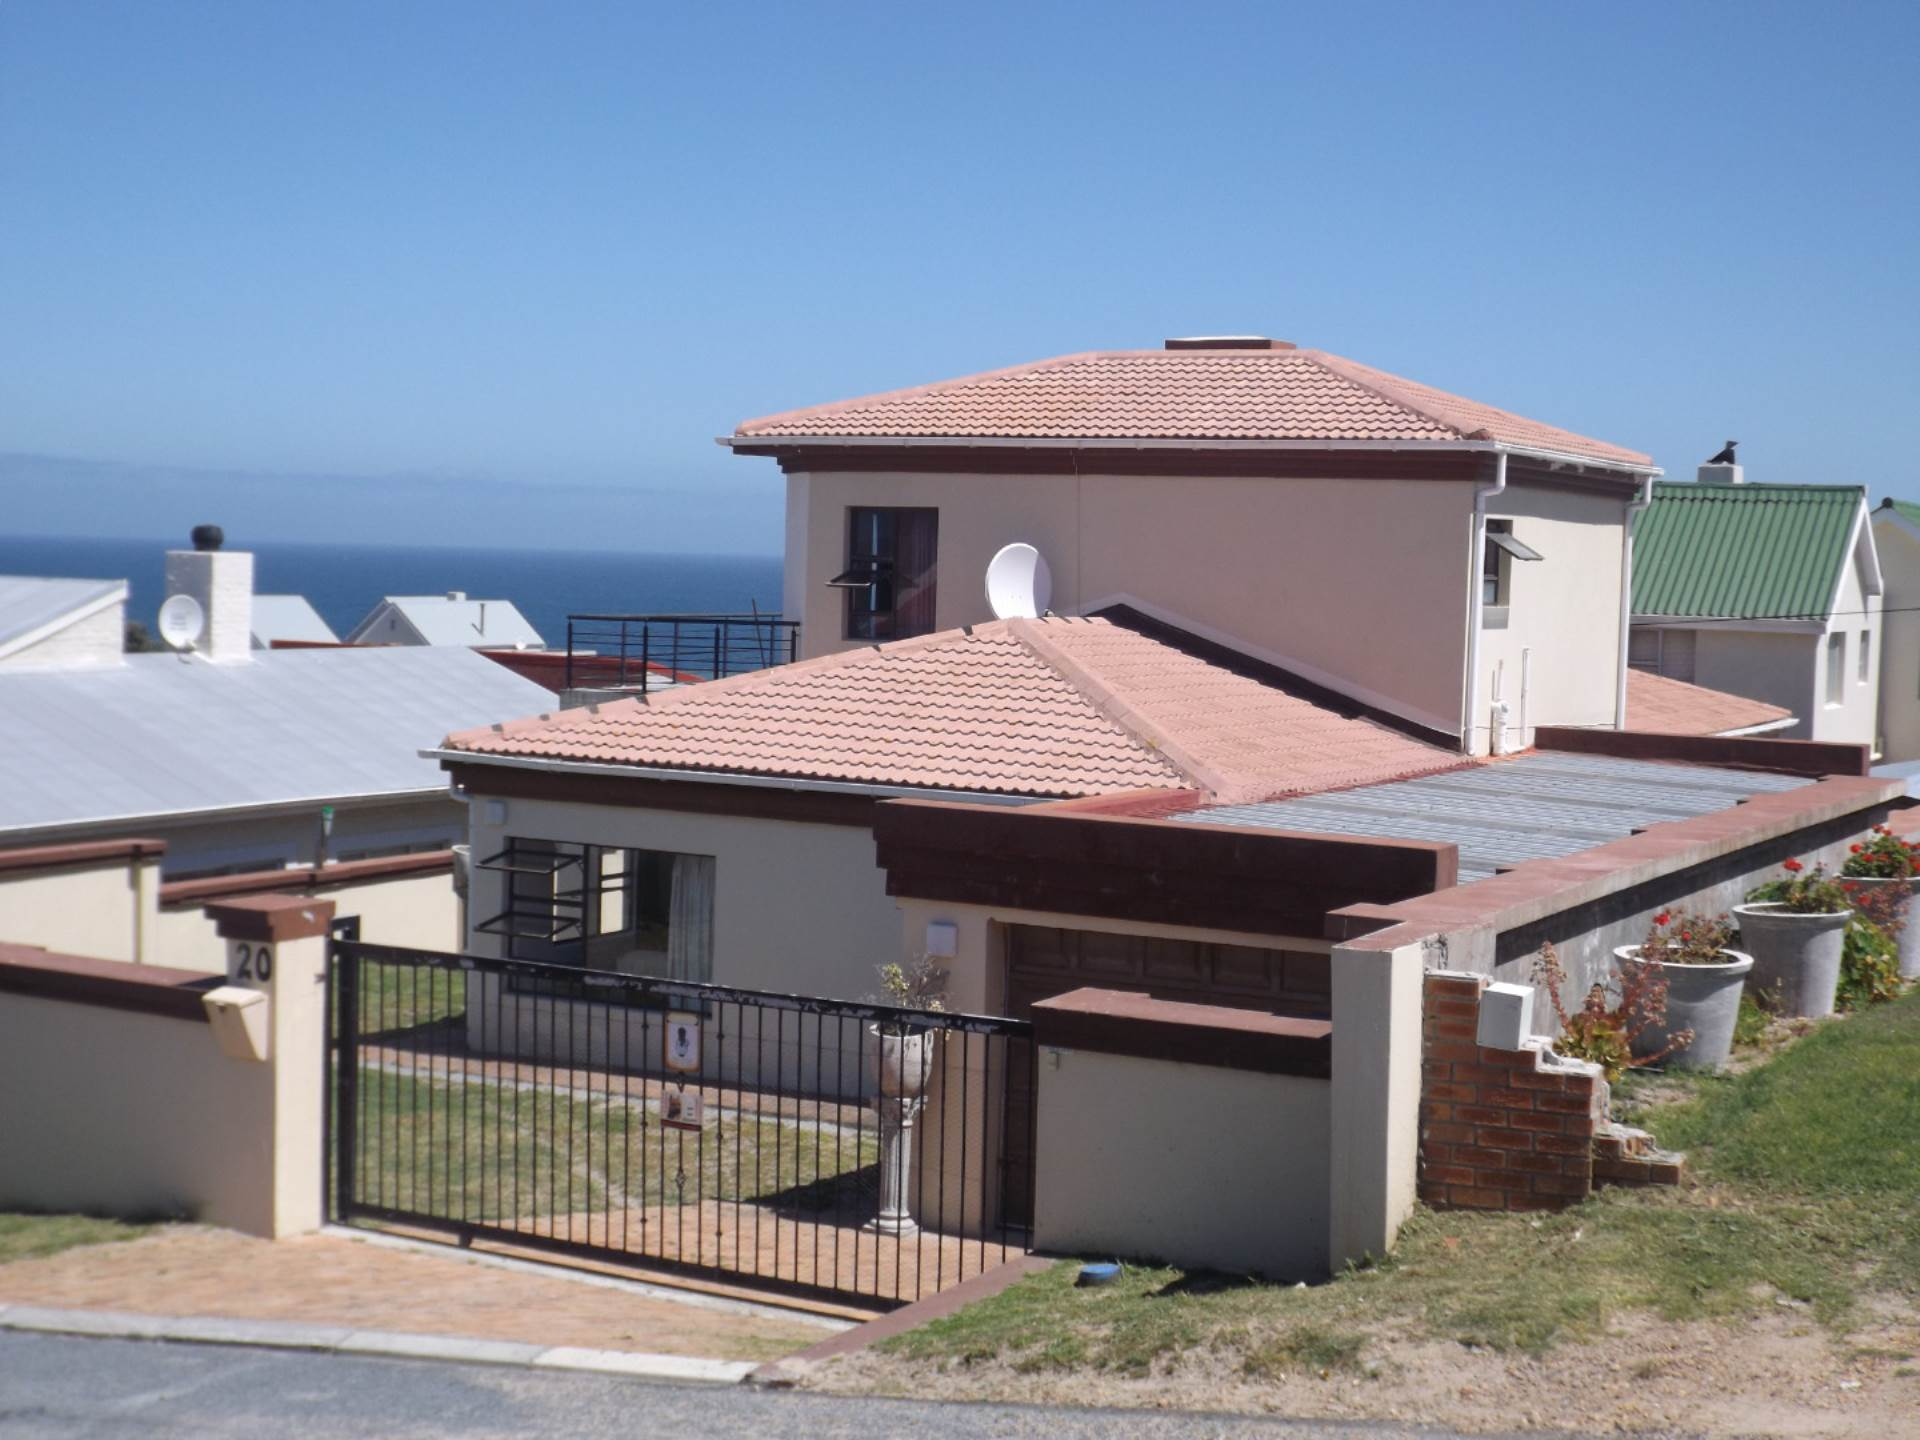 3 BedroomHouse For Sale In De Kelders